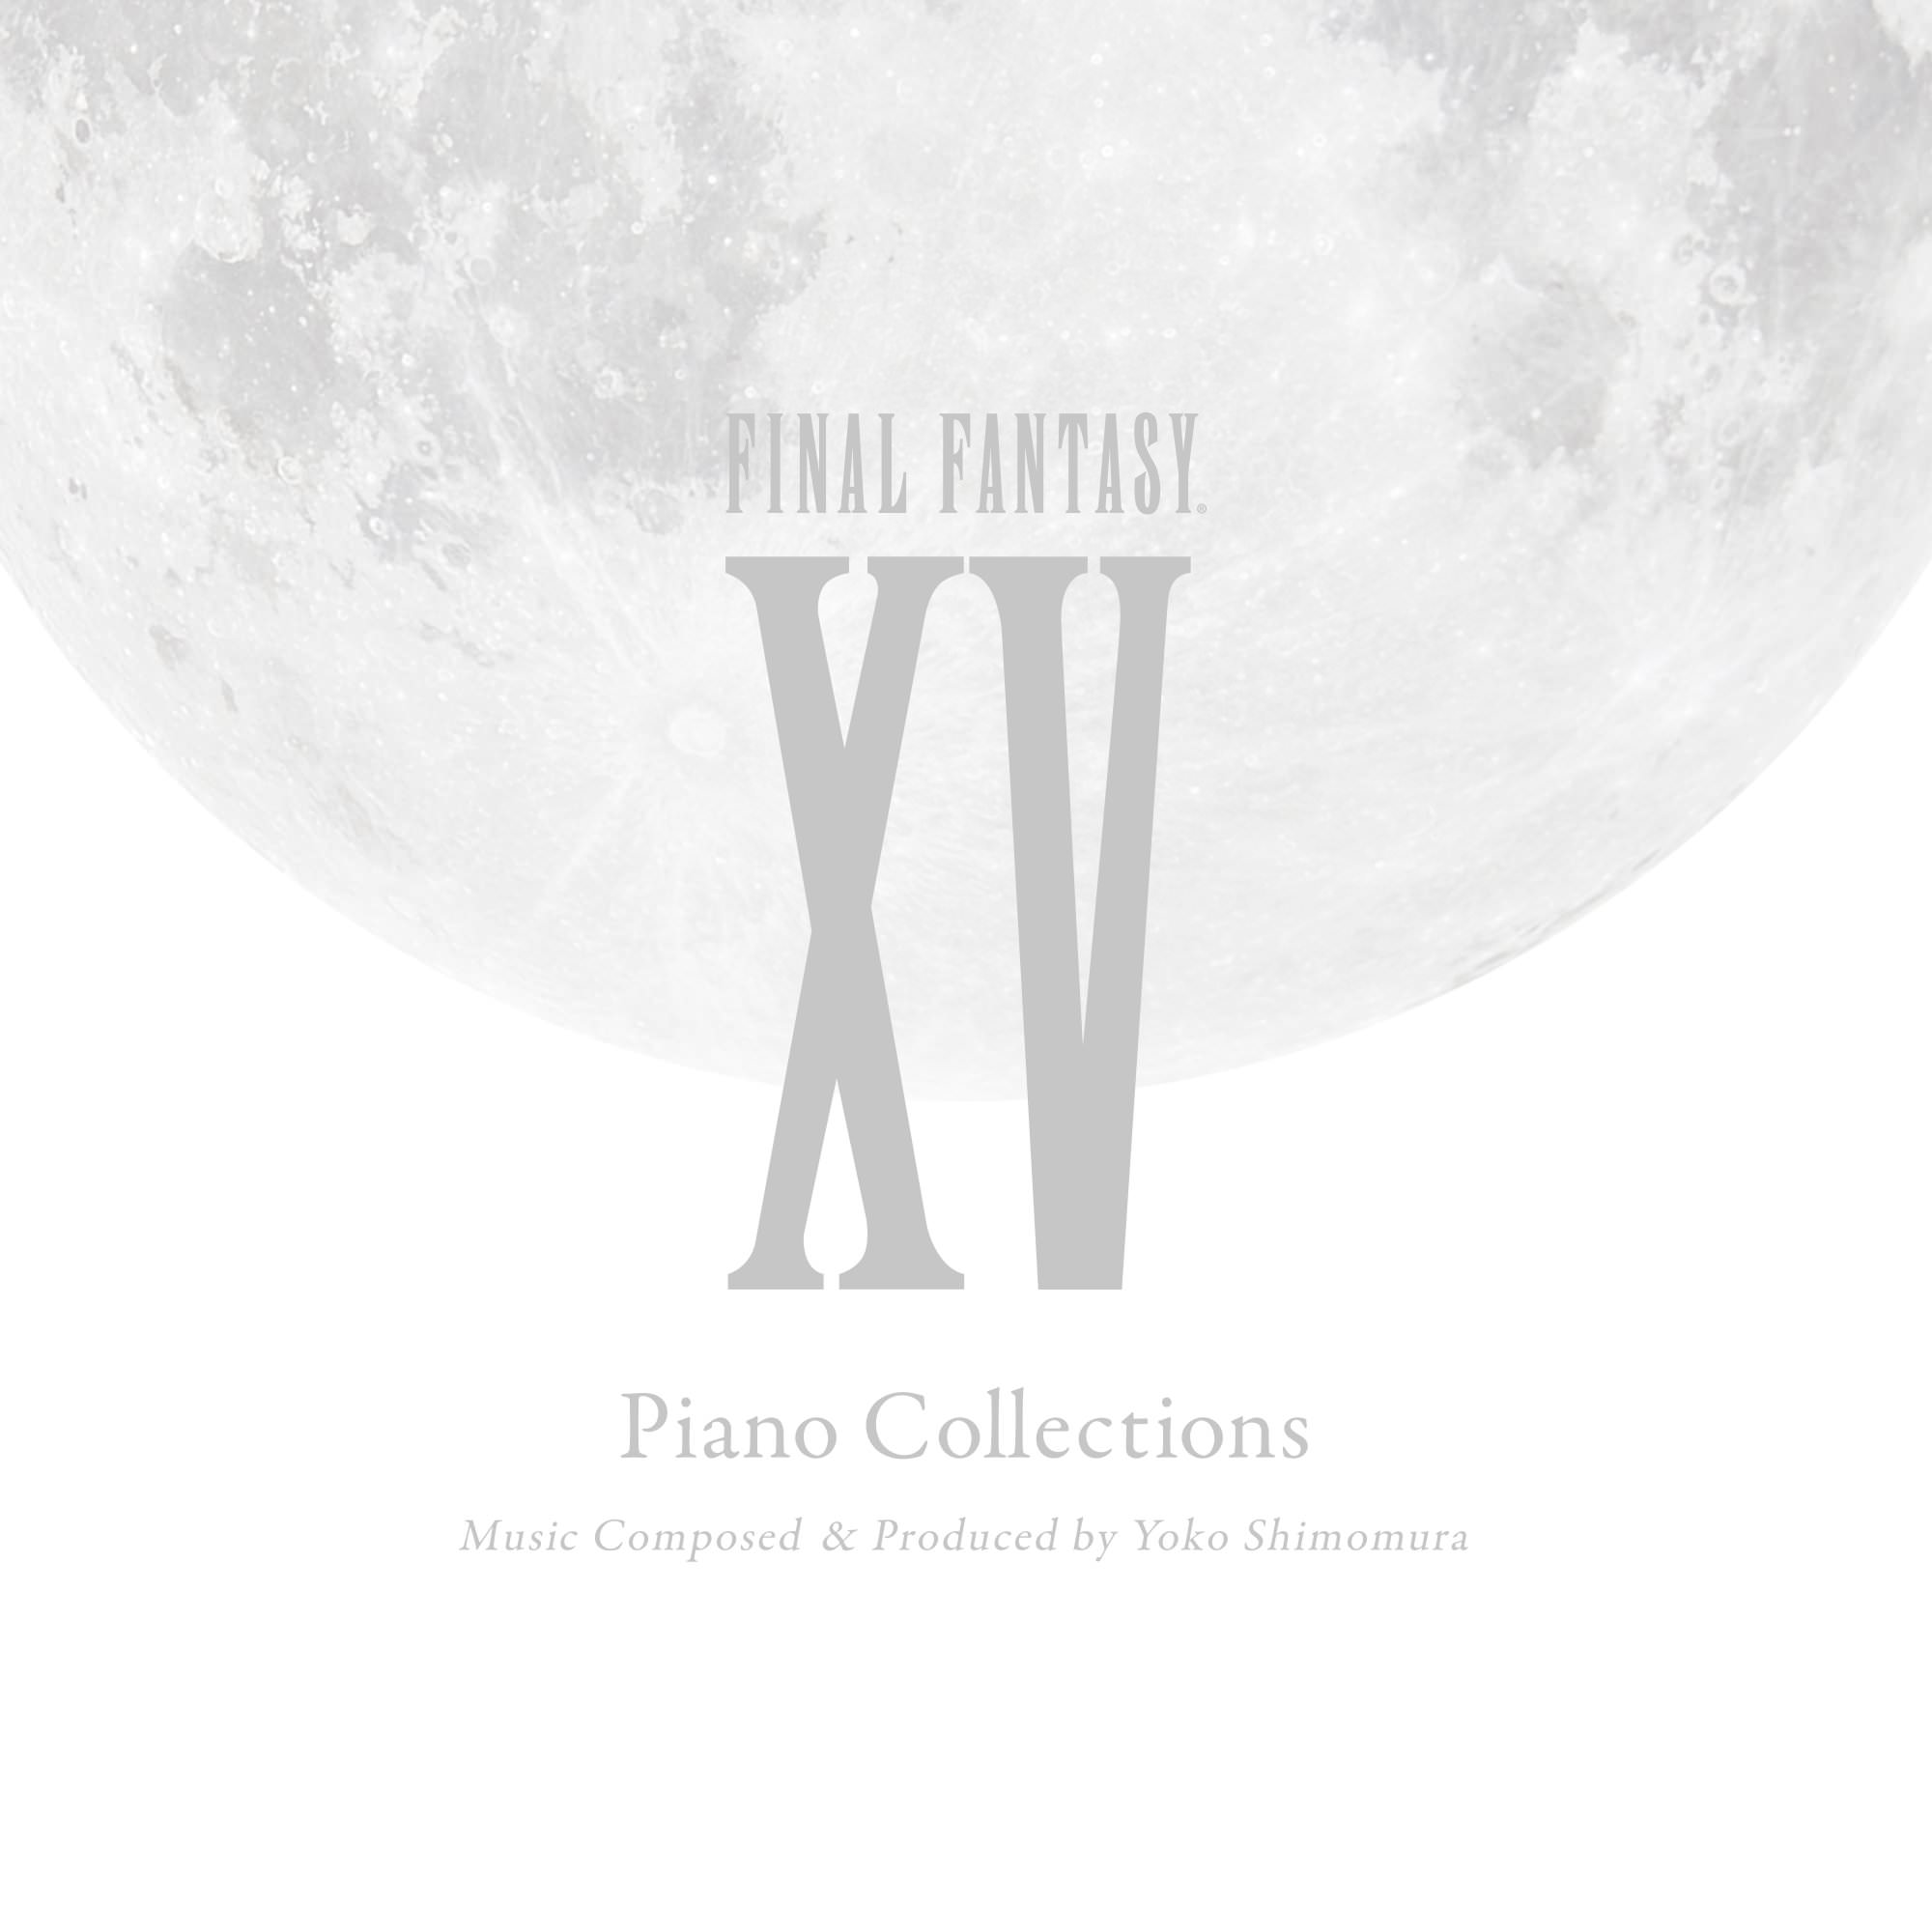 Ff15 piano collections release